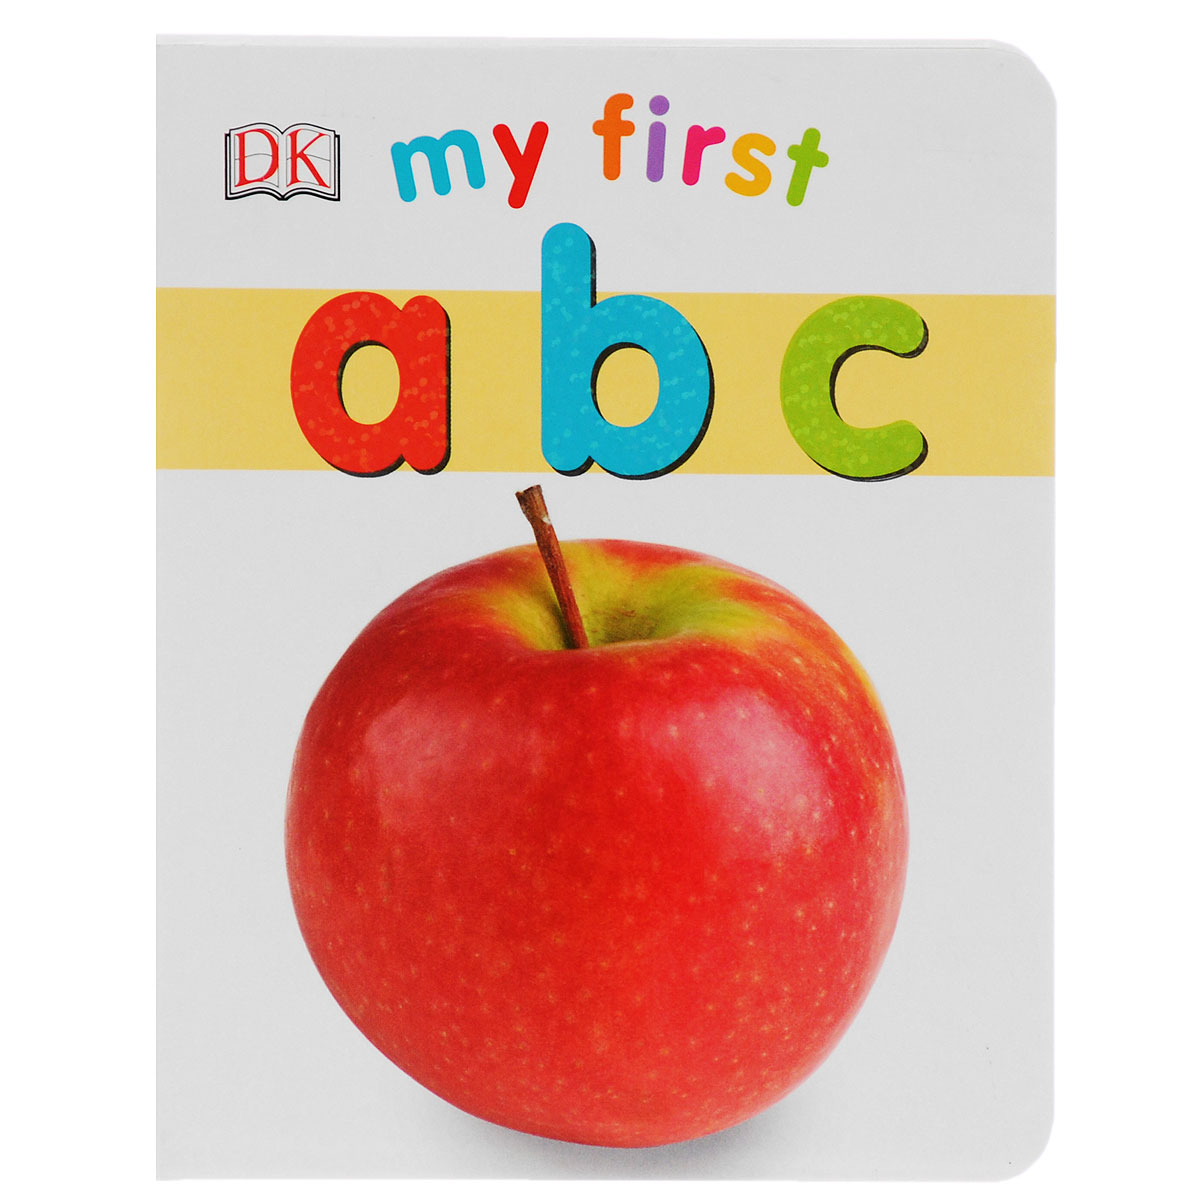 My First: A B C loren b belker the first time manager